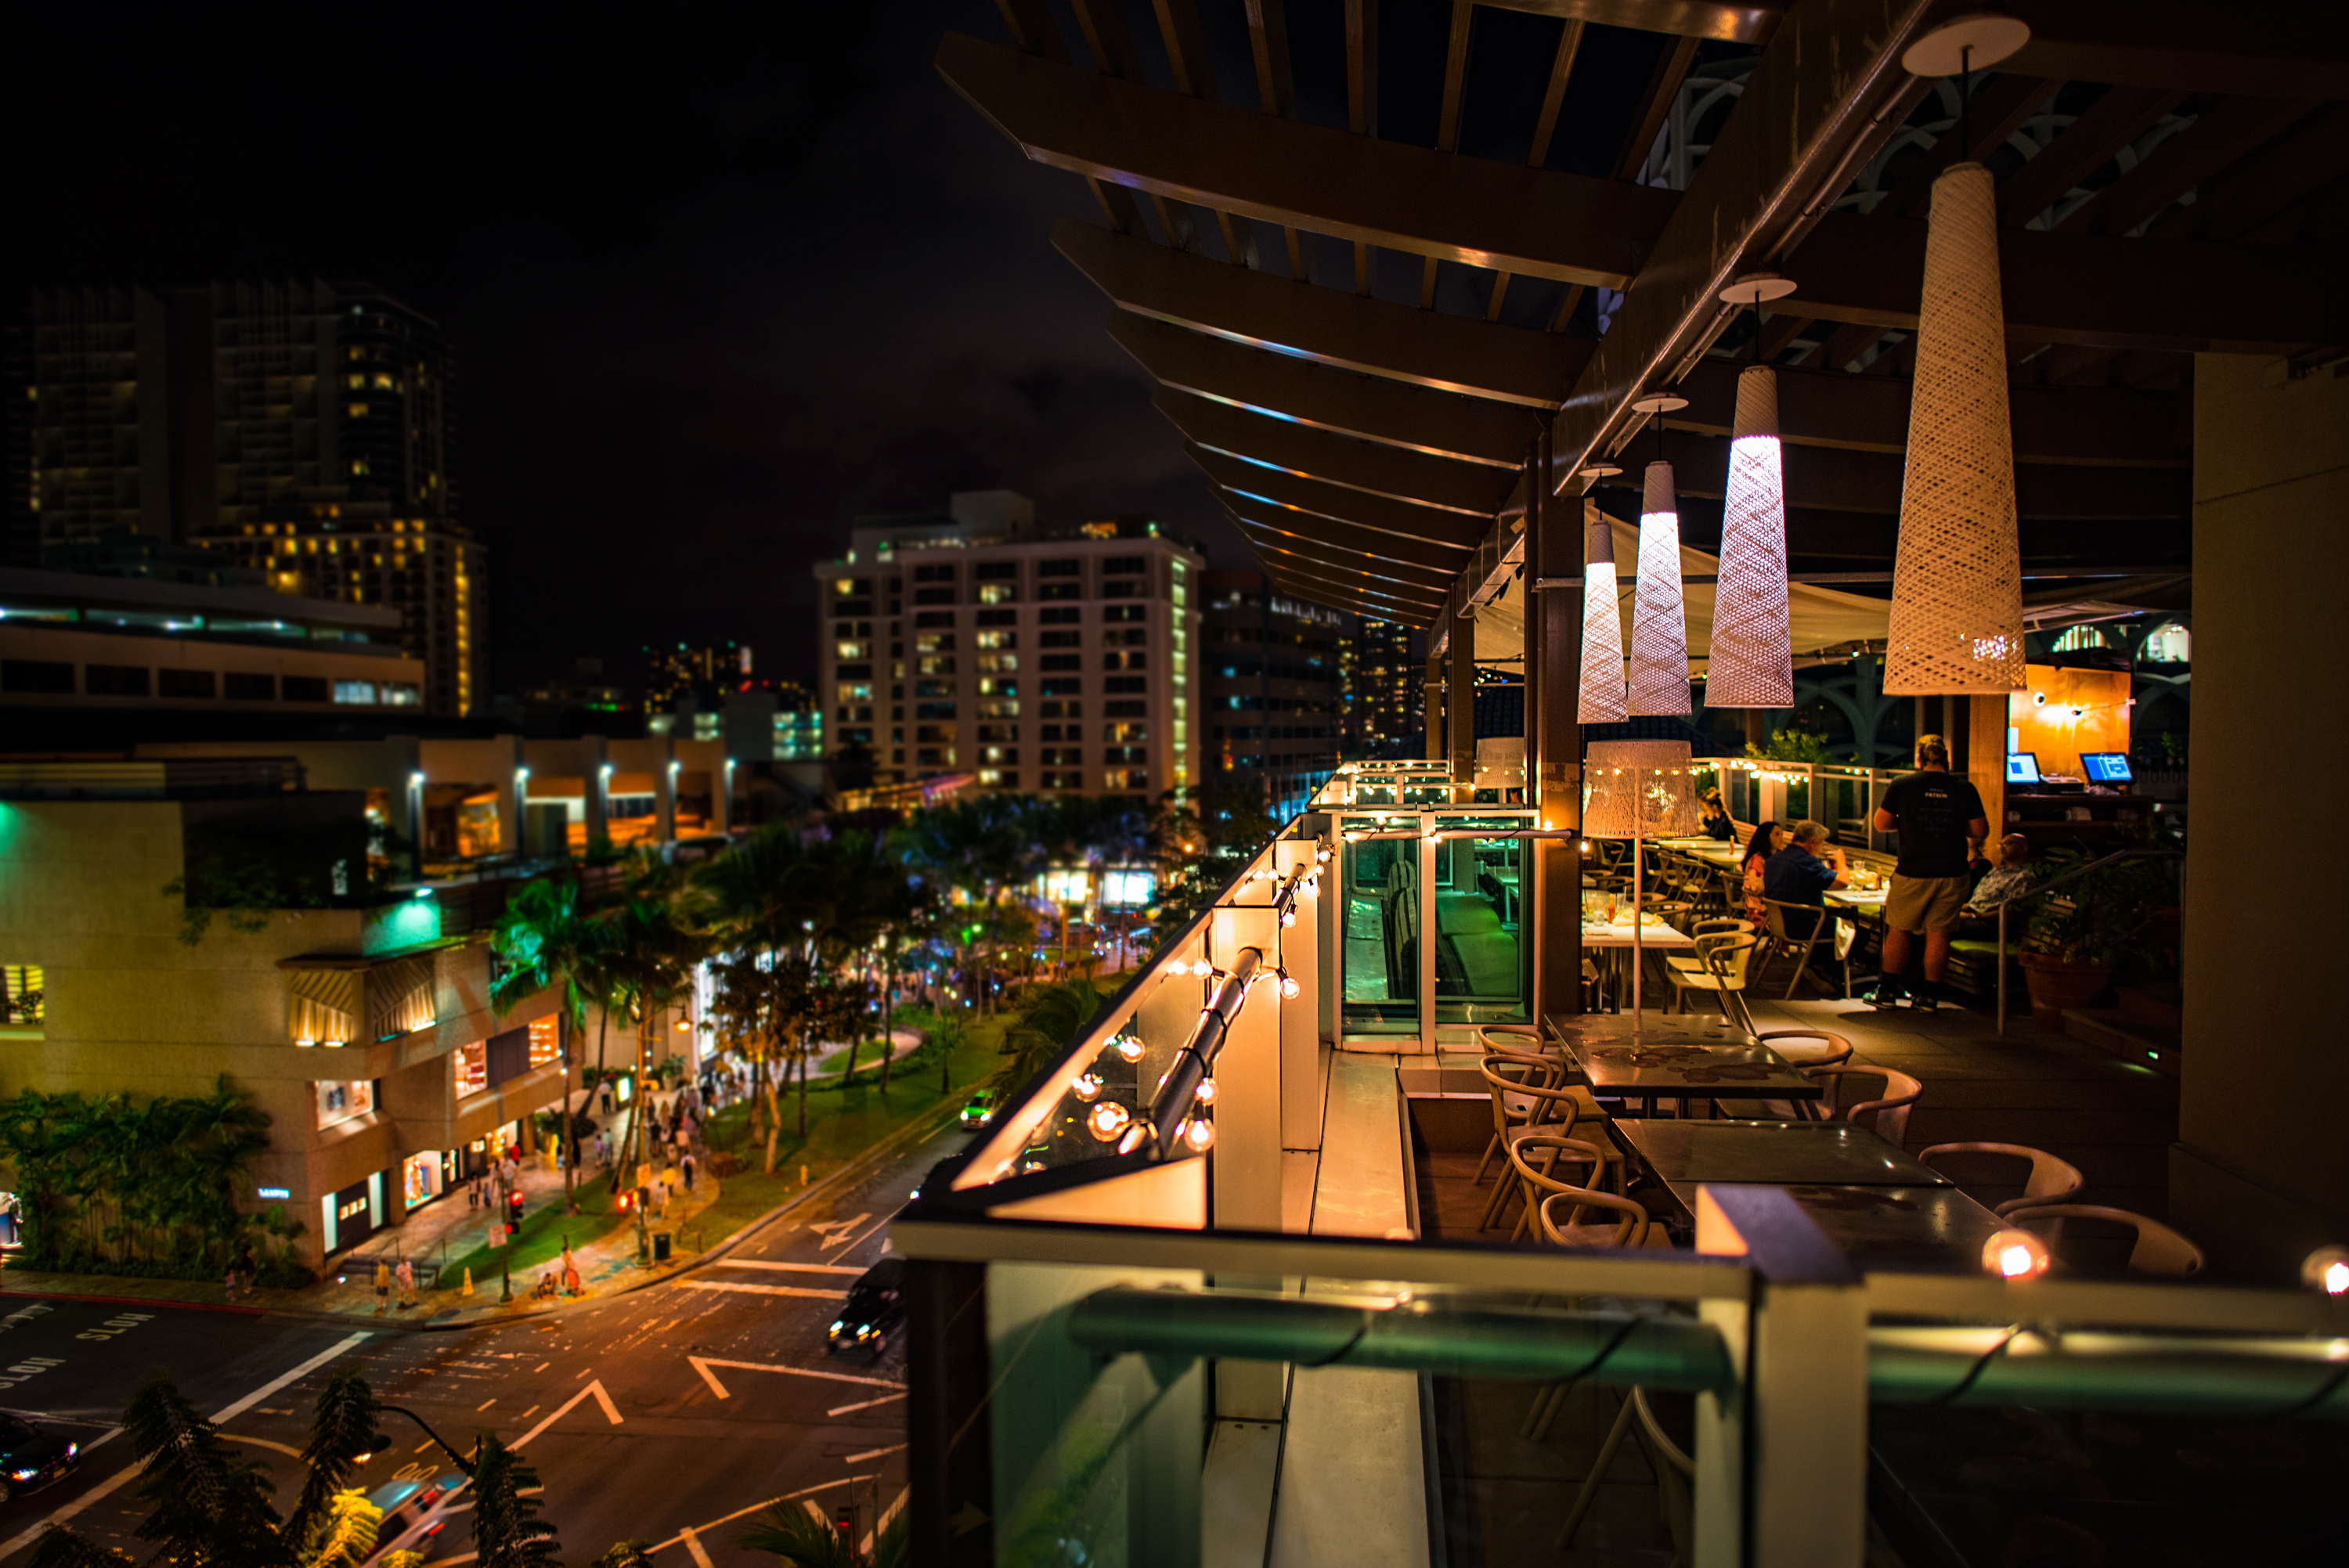 Night Scene in Waikiki